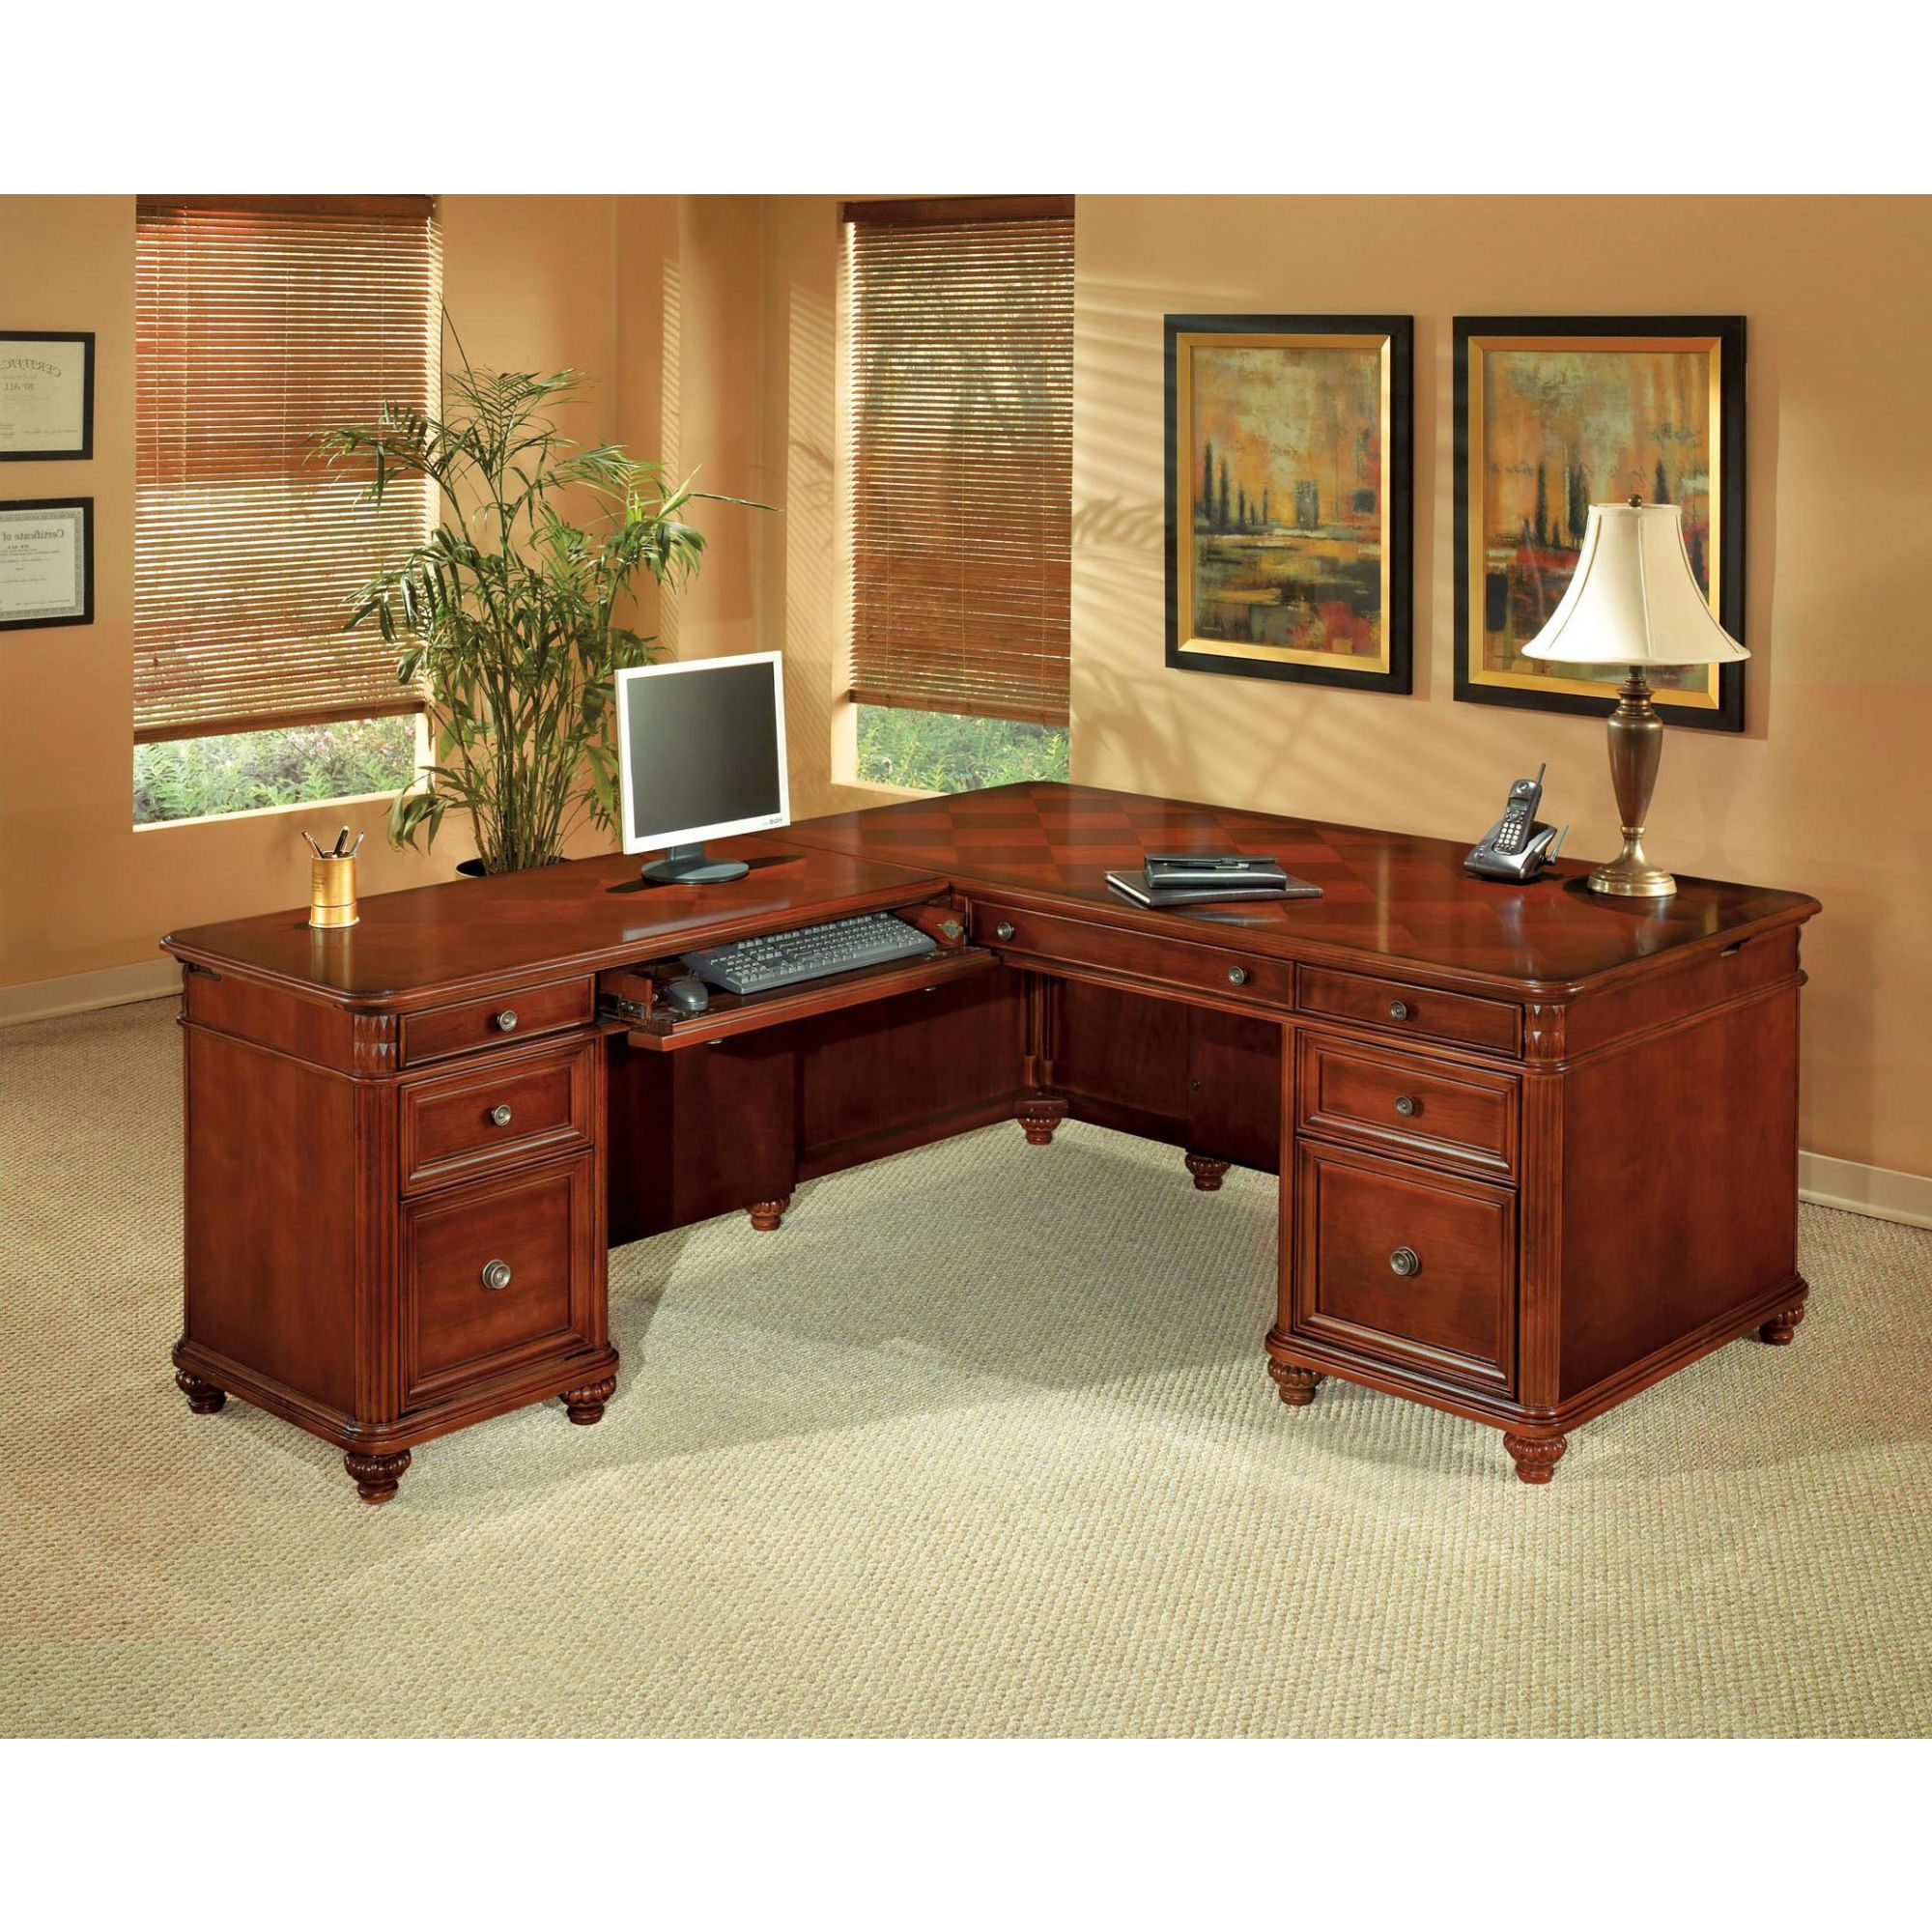 Executive L Shaped Desk Antigua L Shape Executive Desk For The Home L Shaped Executive